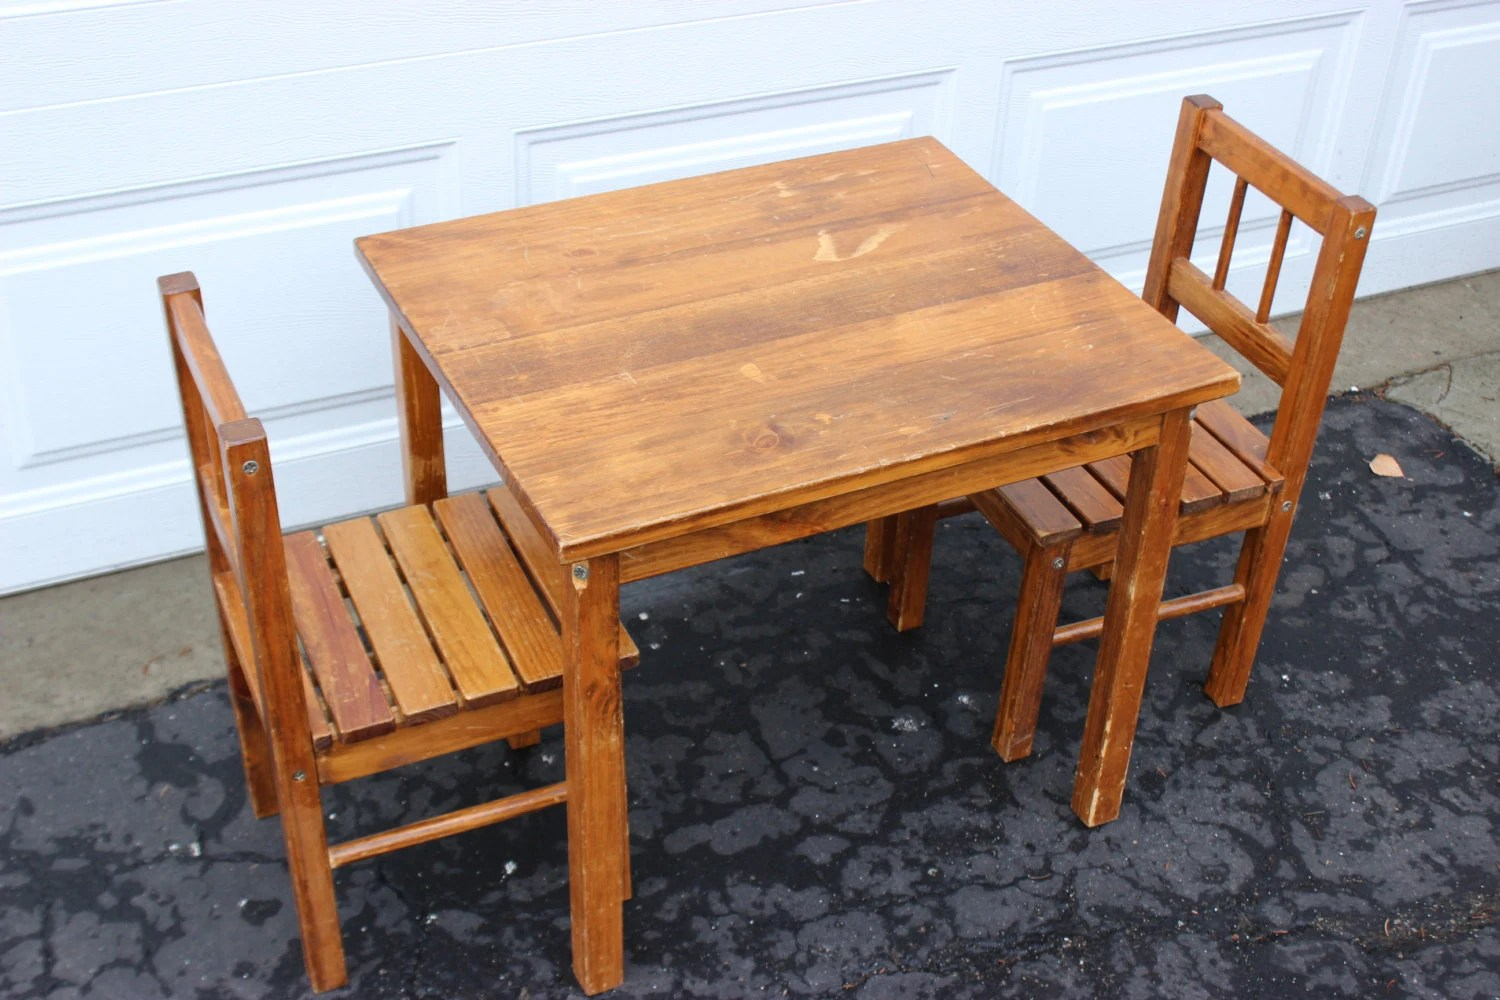 Childrens Wooden Table And Chairs Childrens Wood Table And Chairs